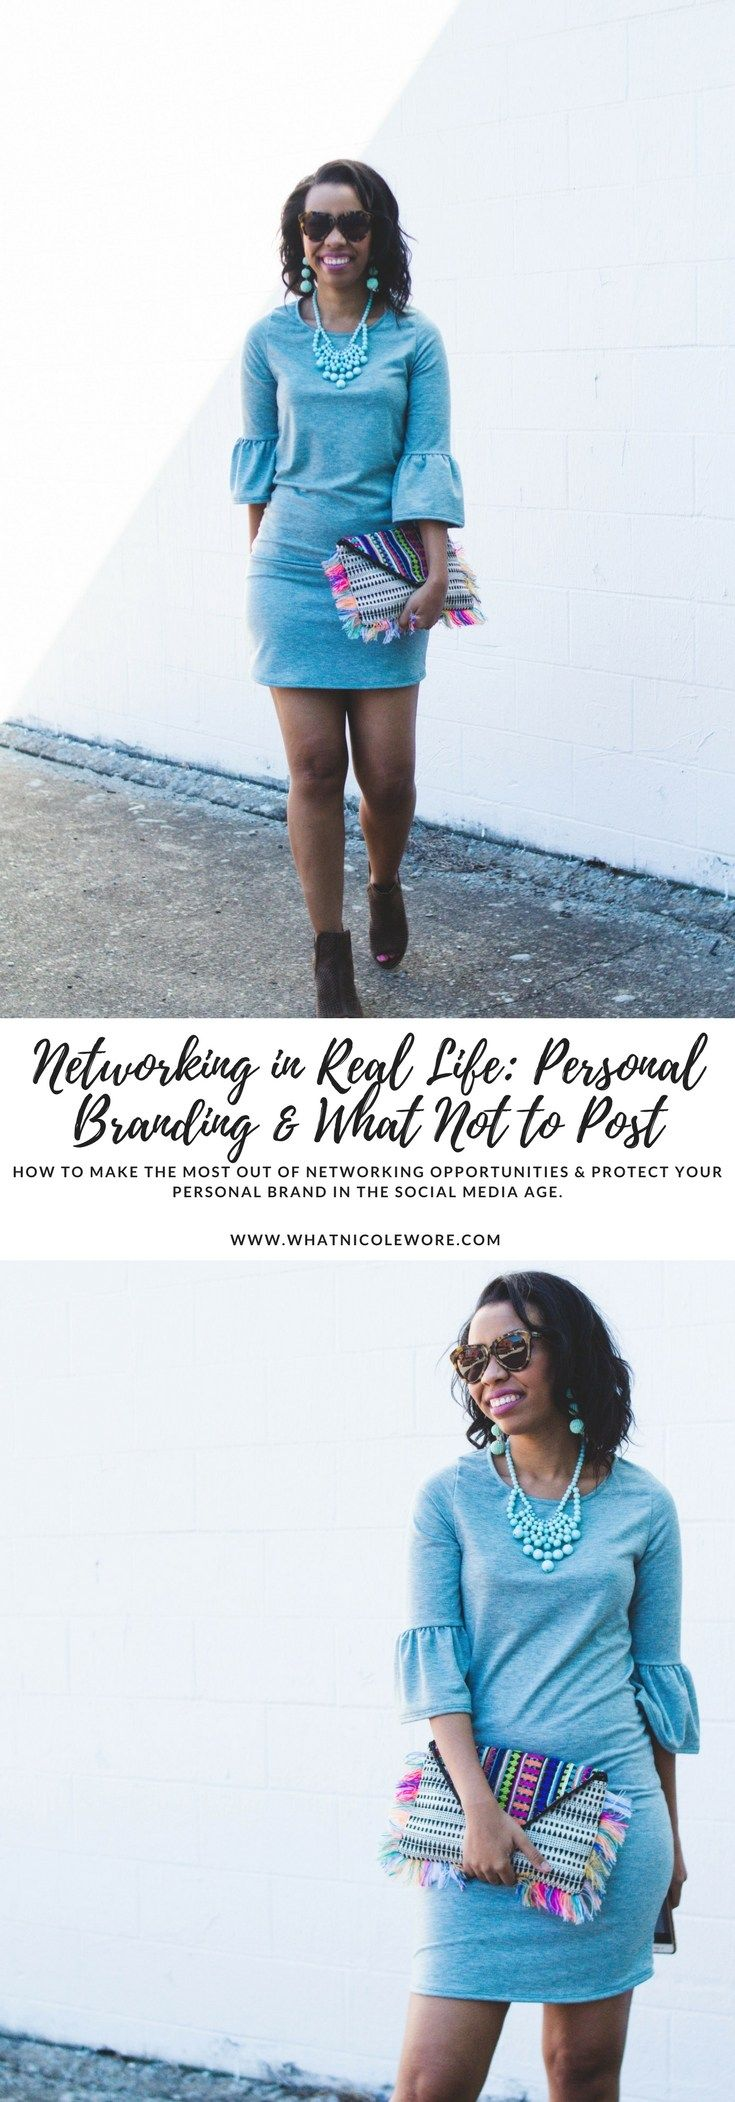 Kentucky blogger, What Nicole Wore, breaks down how to make the most out of networking opportunities, protect your personal brand in the social media age, what questions to ask, and what you shouldn't be posting on social media. // pink blush boutique, baublebar clutch, networking tips for beginners, personal branding tips, social media guidelines, affordable statement jewelry